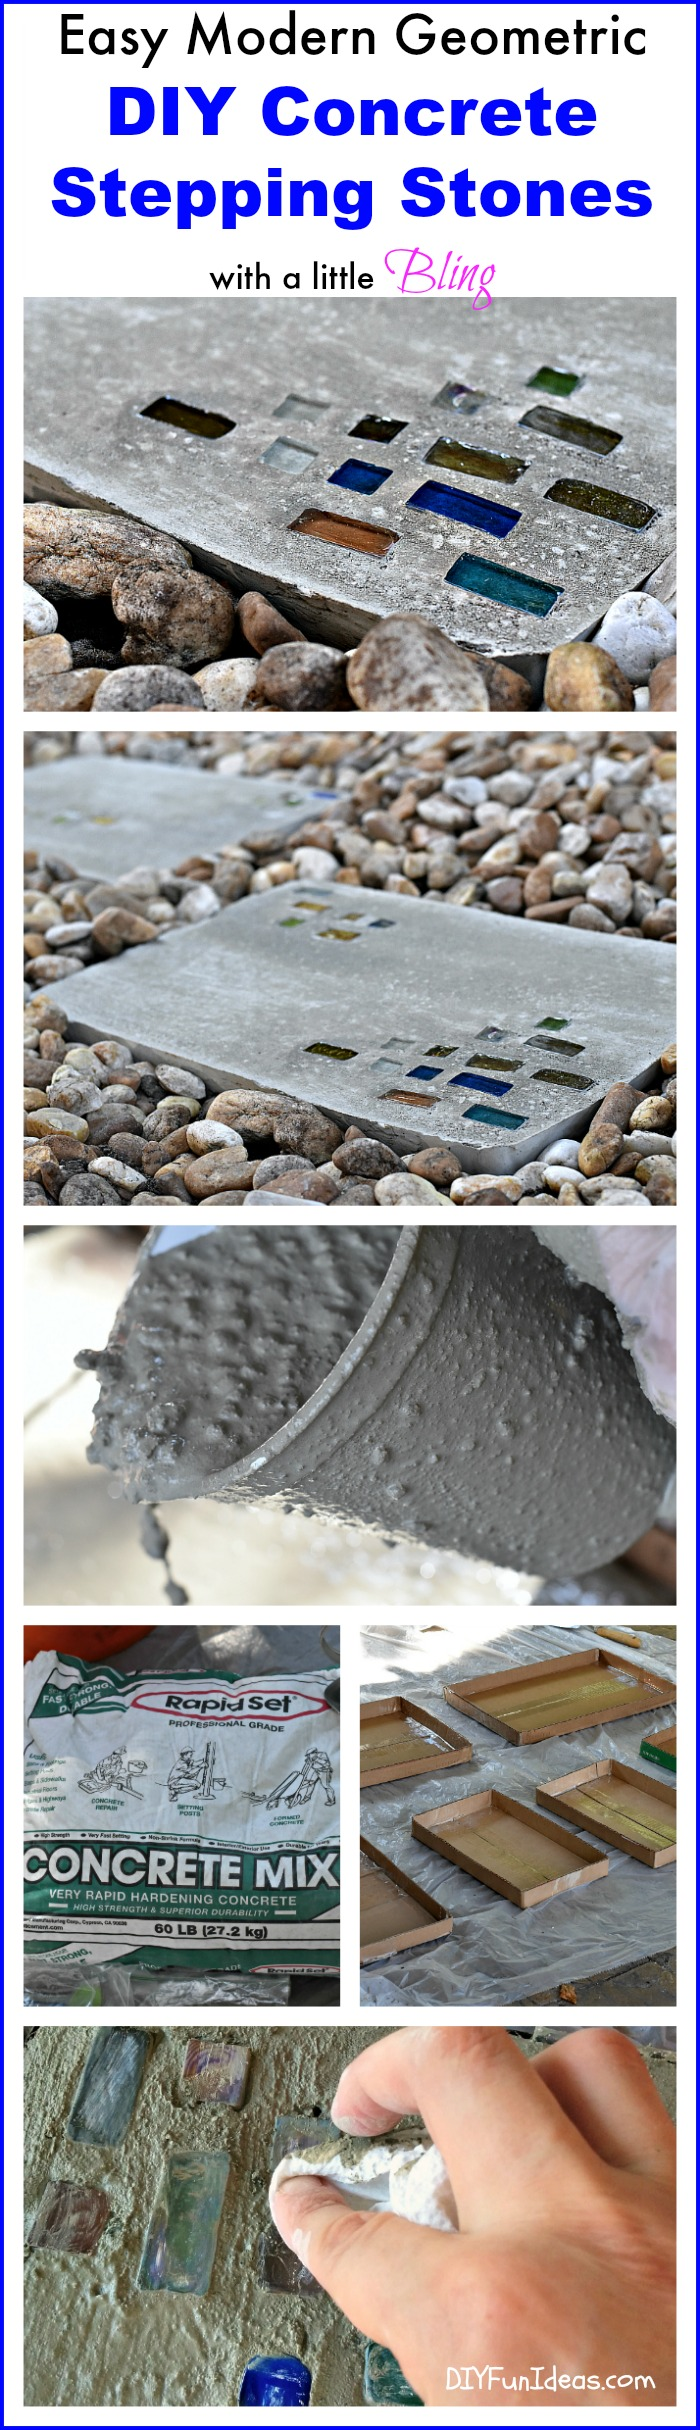 EASY DIY MODERN CONCRETE STEPPING STONES with a little BLING!